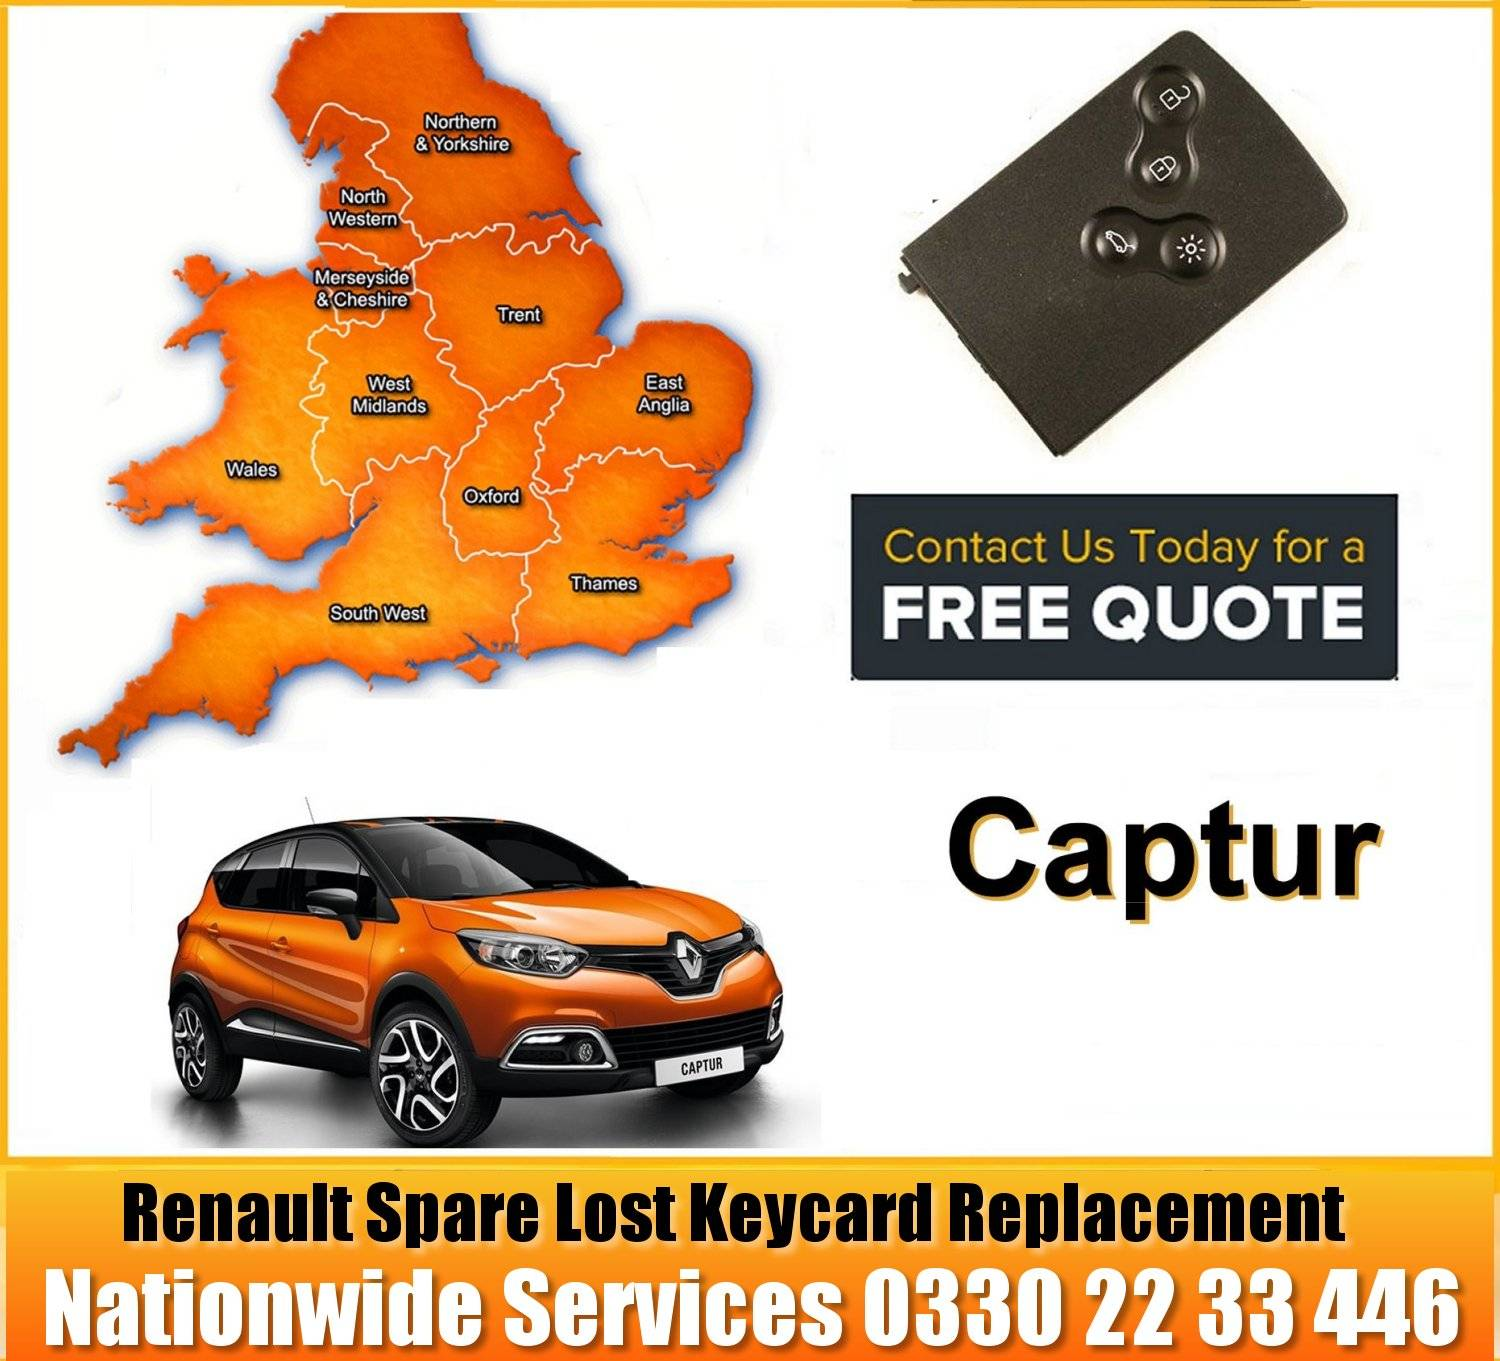 What To Do if Your Keyless Entry Card System Doesn't Work - Renault UK